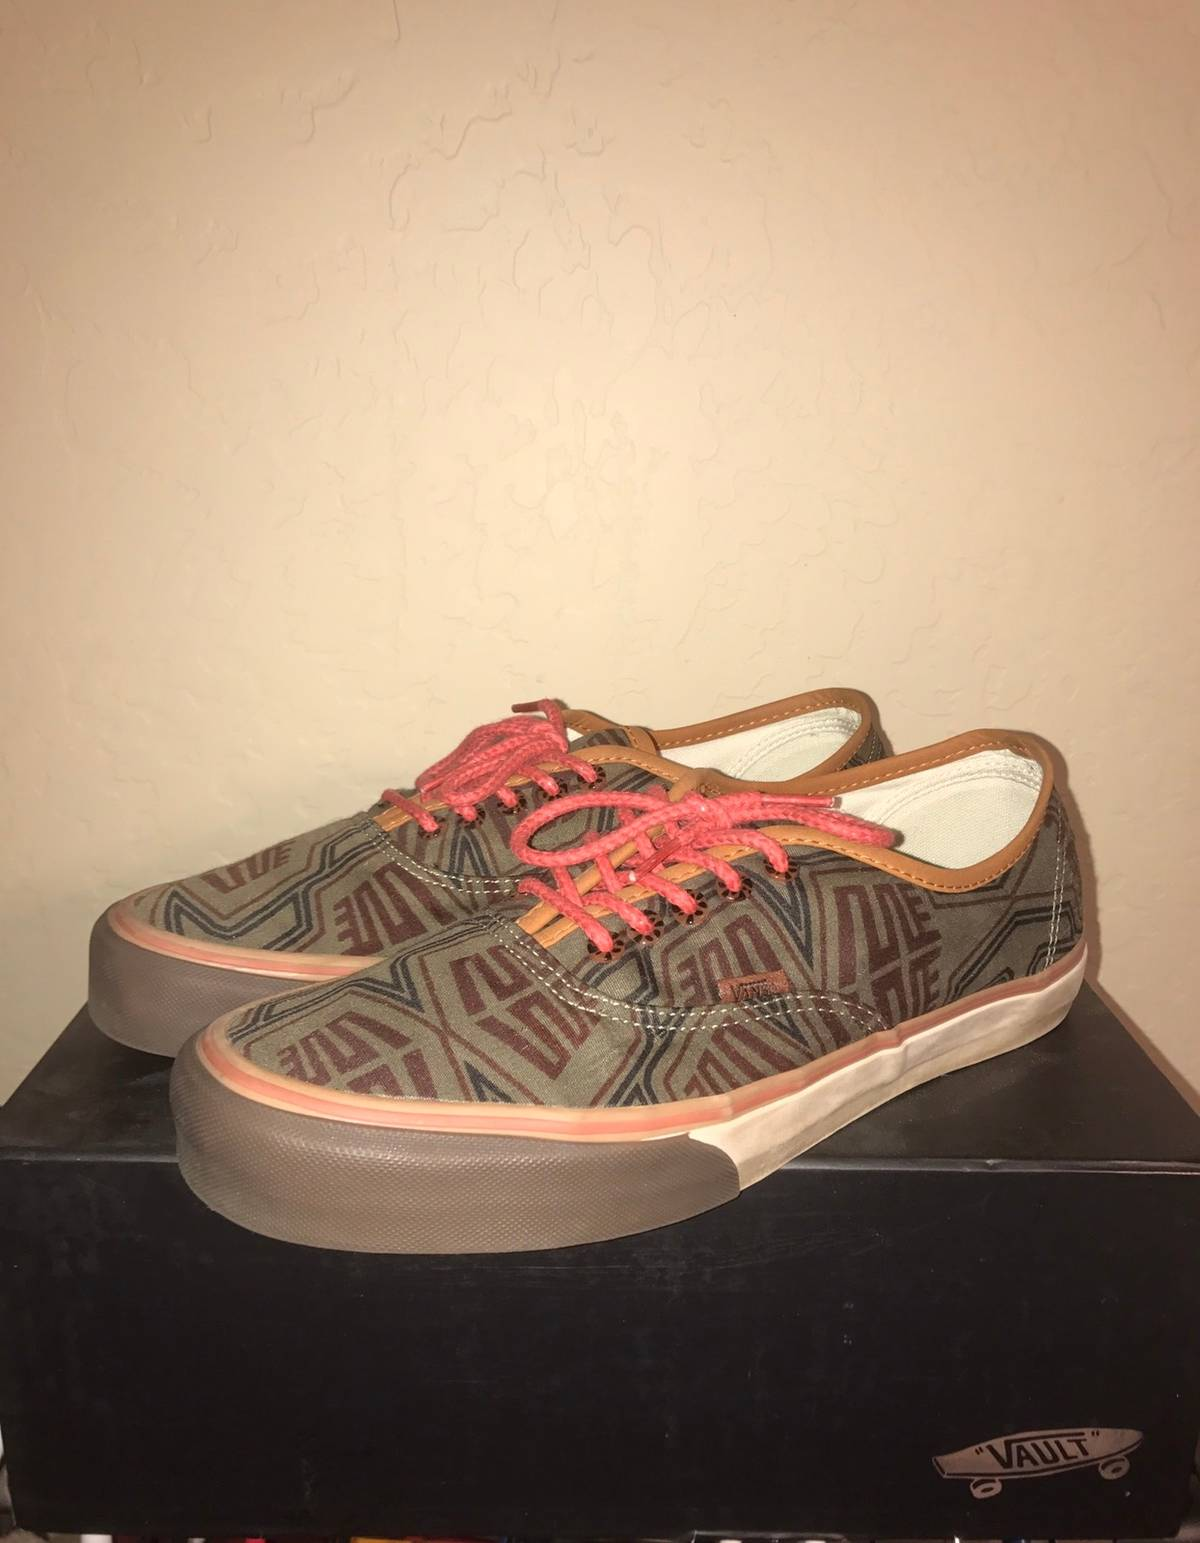 60b95860bf Vans Vans Vault OG Authentic LX x Bodega  Coming to America  Pagne Brown  Size 11 - Low-Top Sneakers for Sale - Grailed